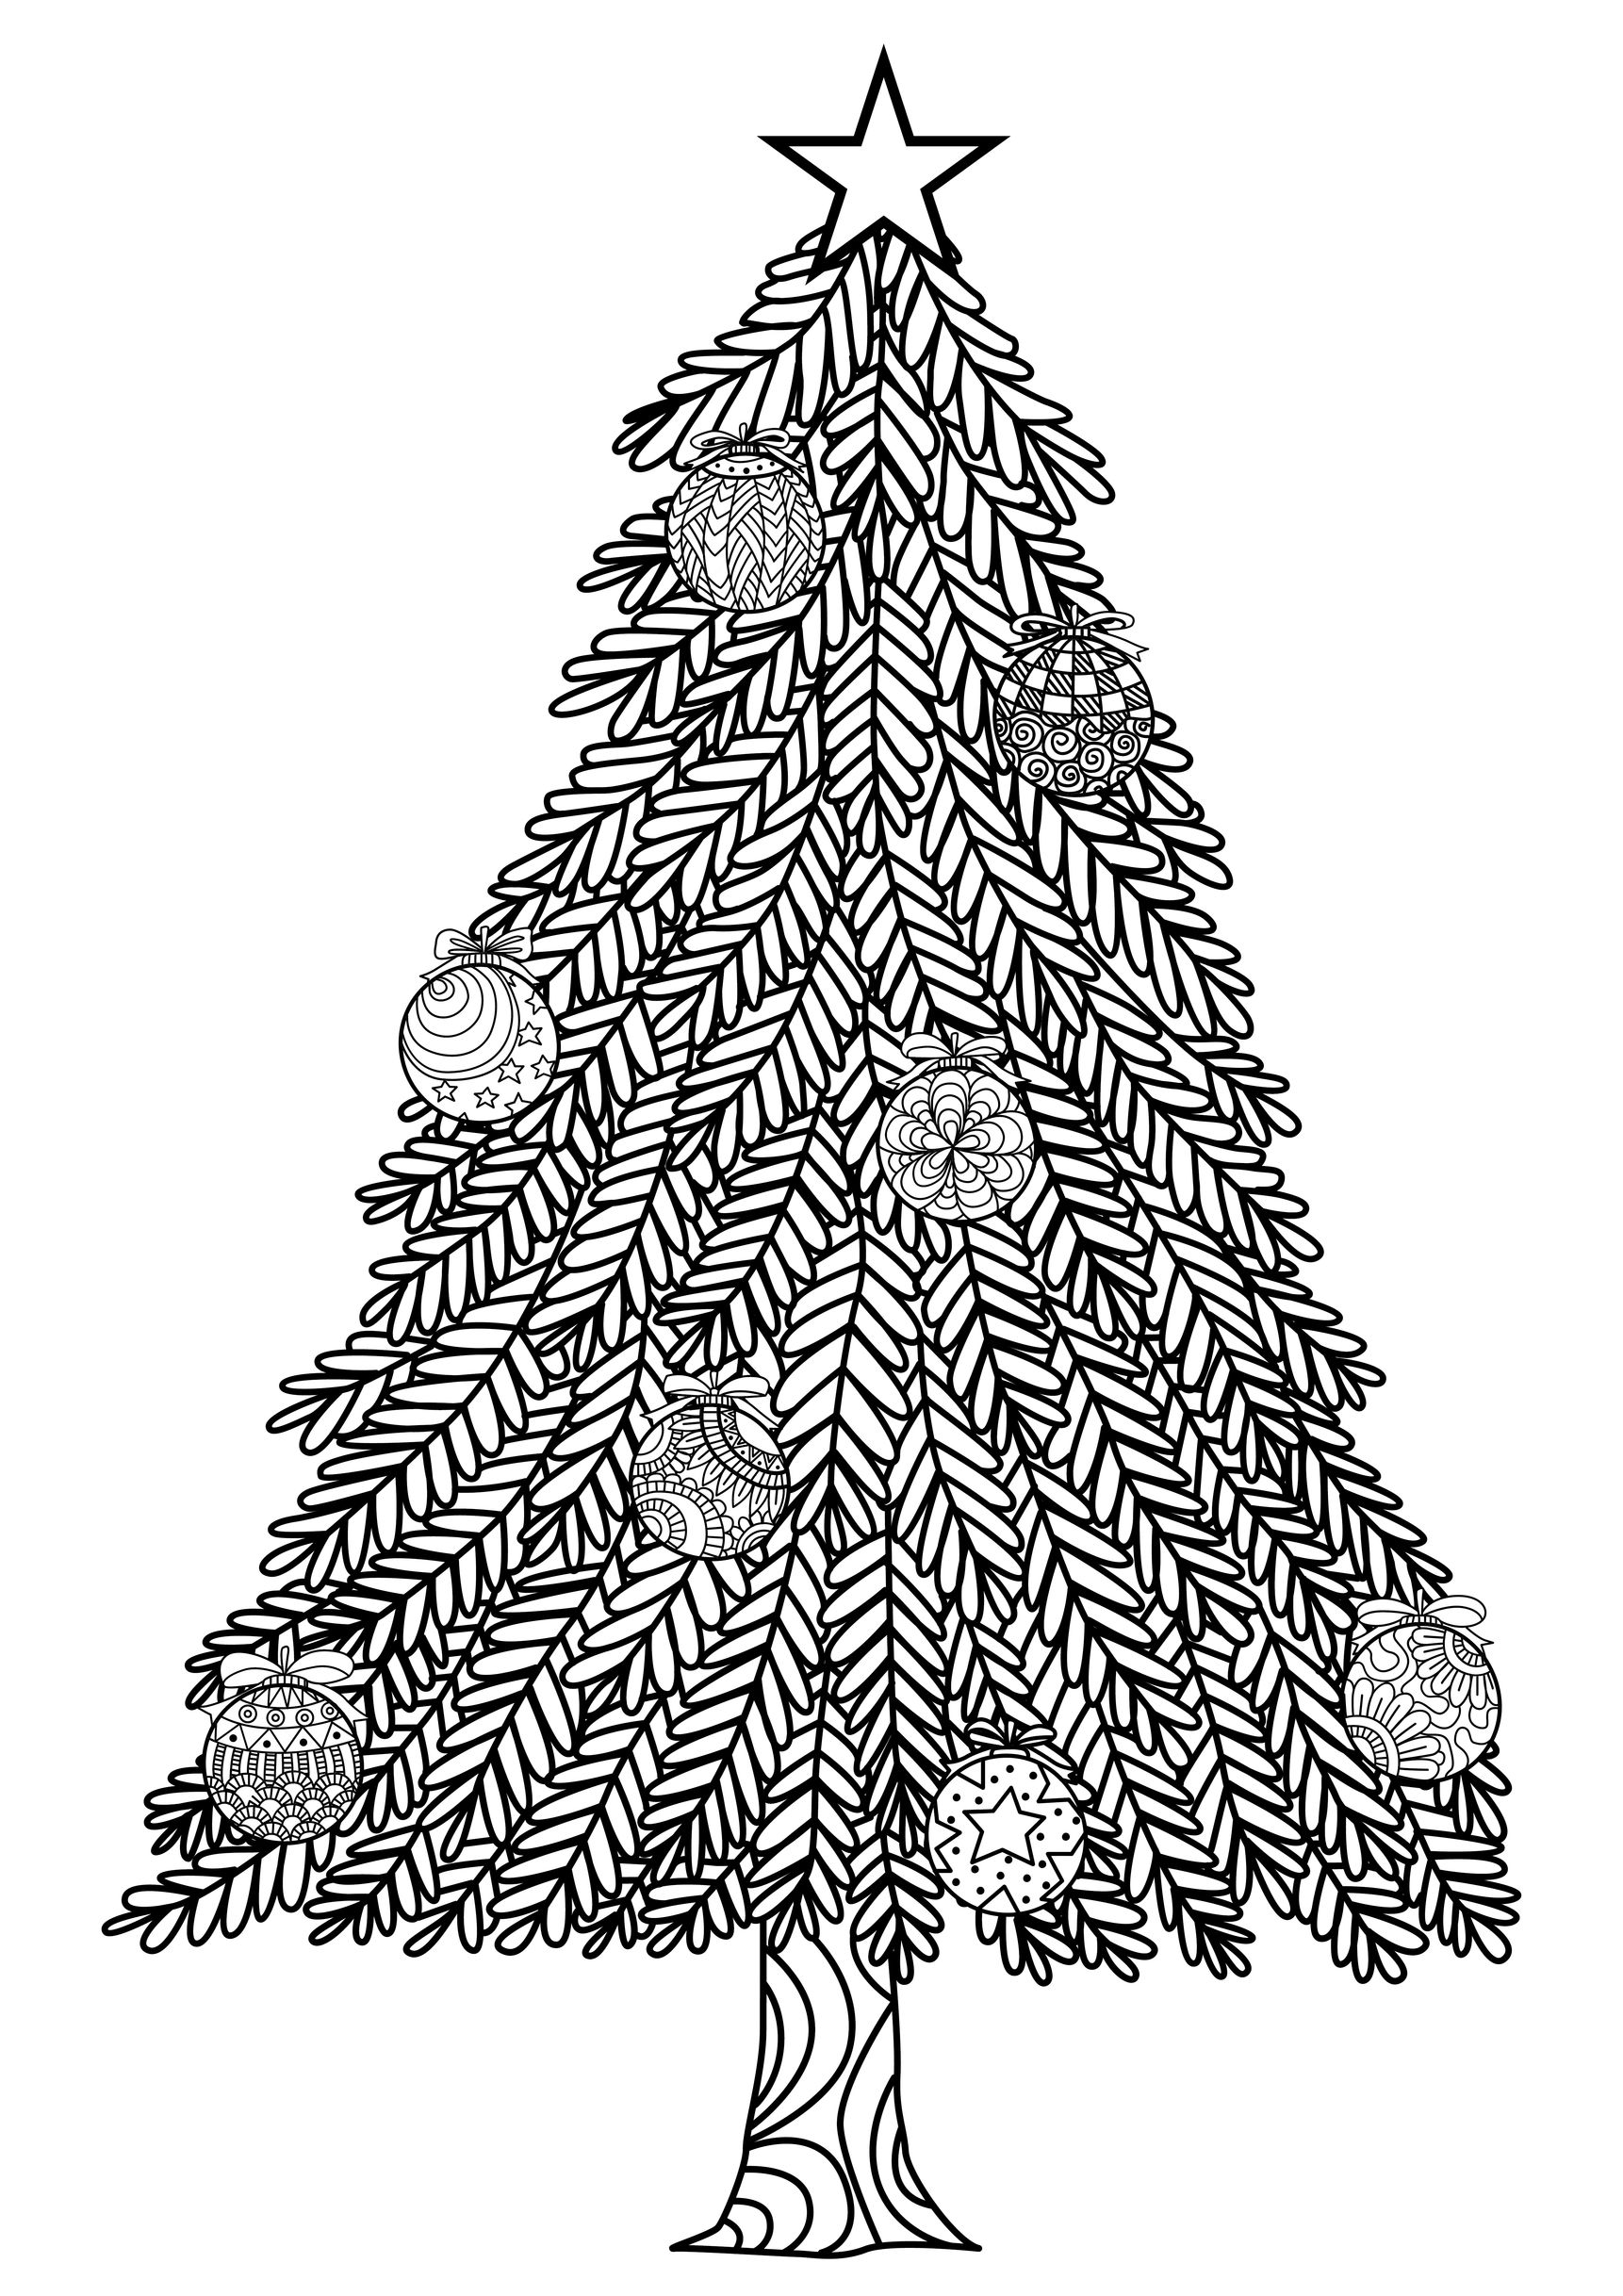 Christmas tree with ball ornaments - Christmas Adult Coloring Pages